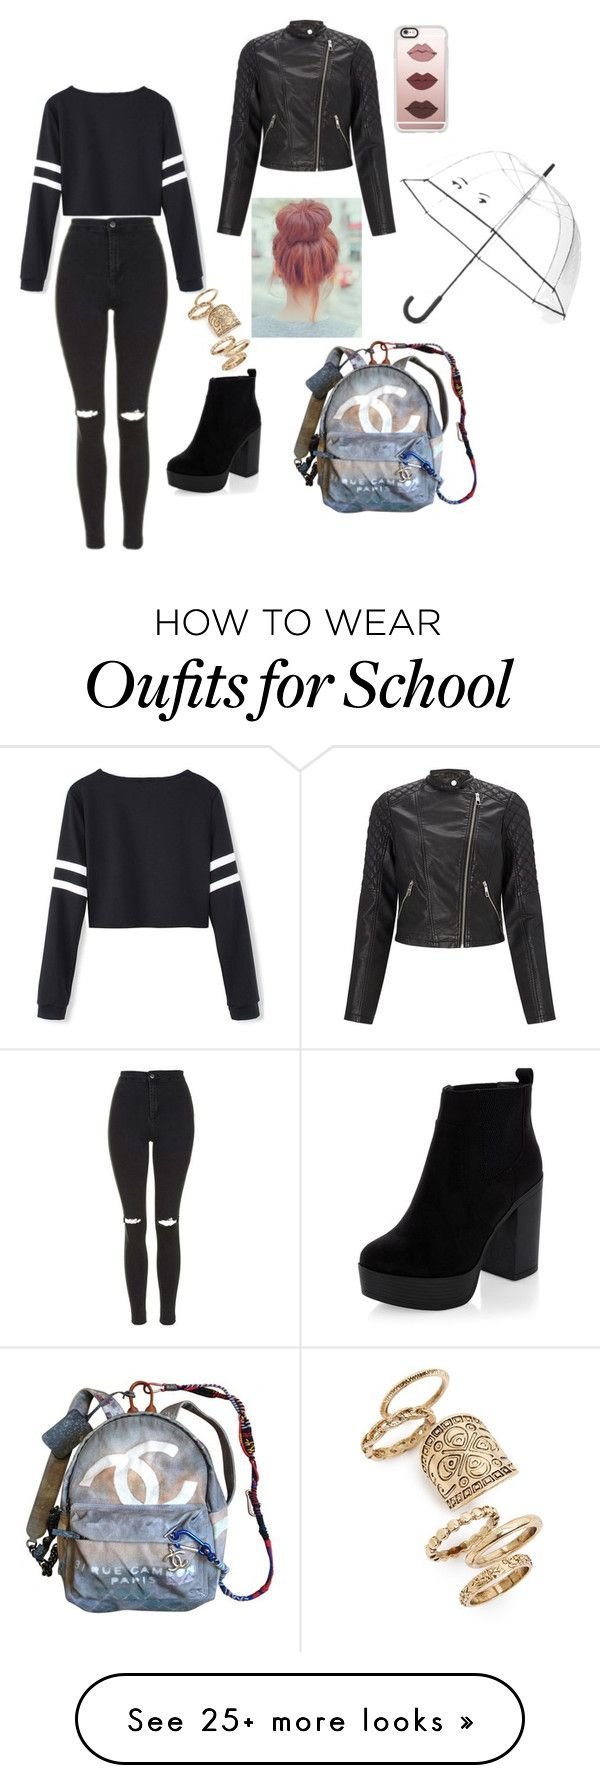 """School day"" by ana-zelic on Polyvore featuring Topshop, Lipsy, Chanel, Kate Spade, New Look and Casetify"